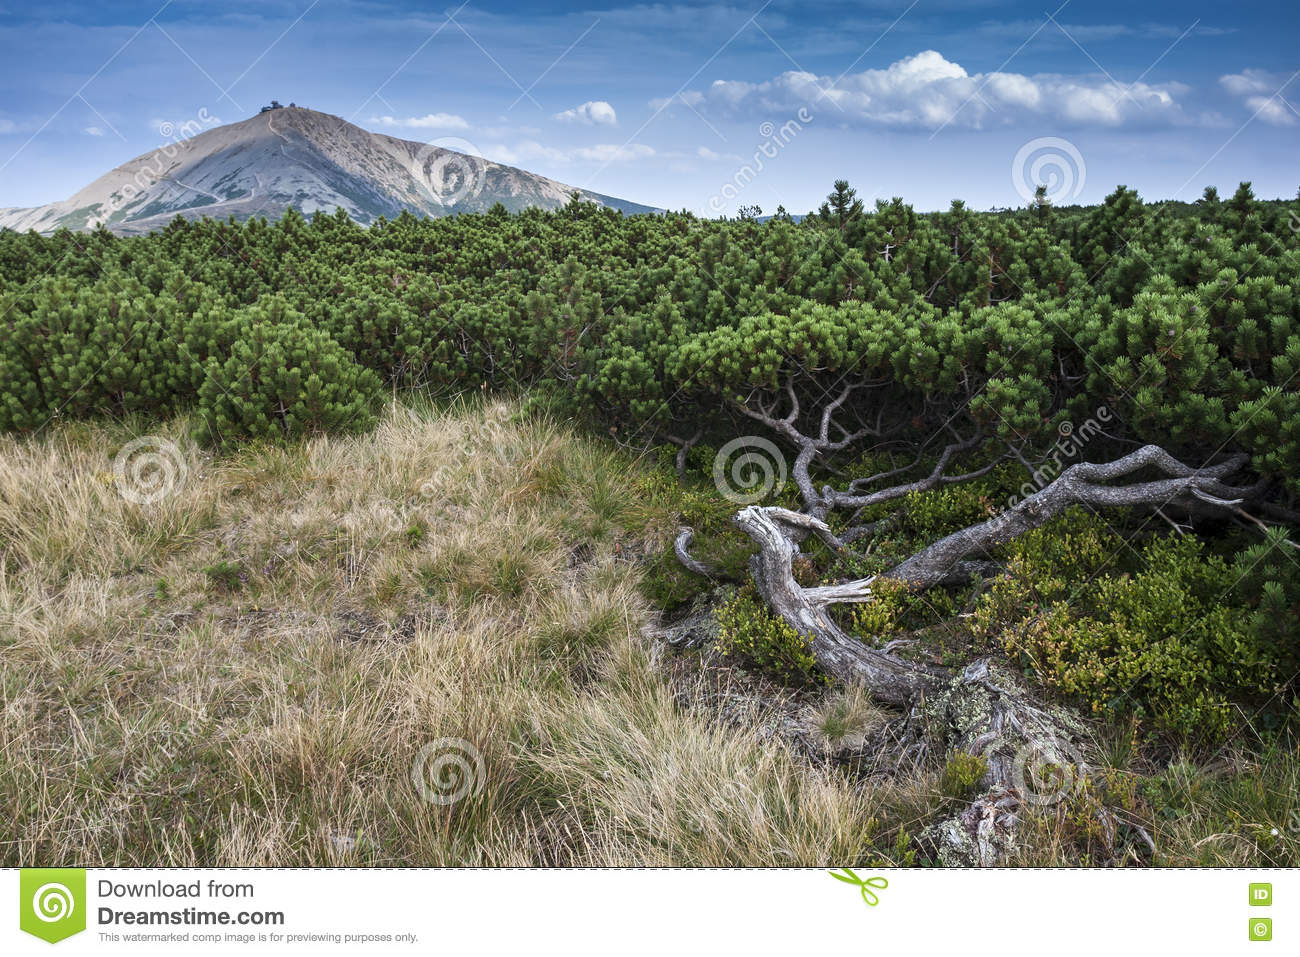 Autumn Landscape with Plants and Mountain